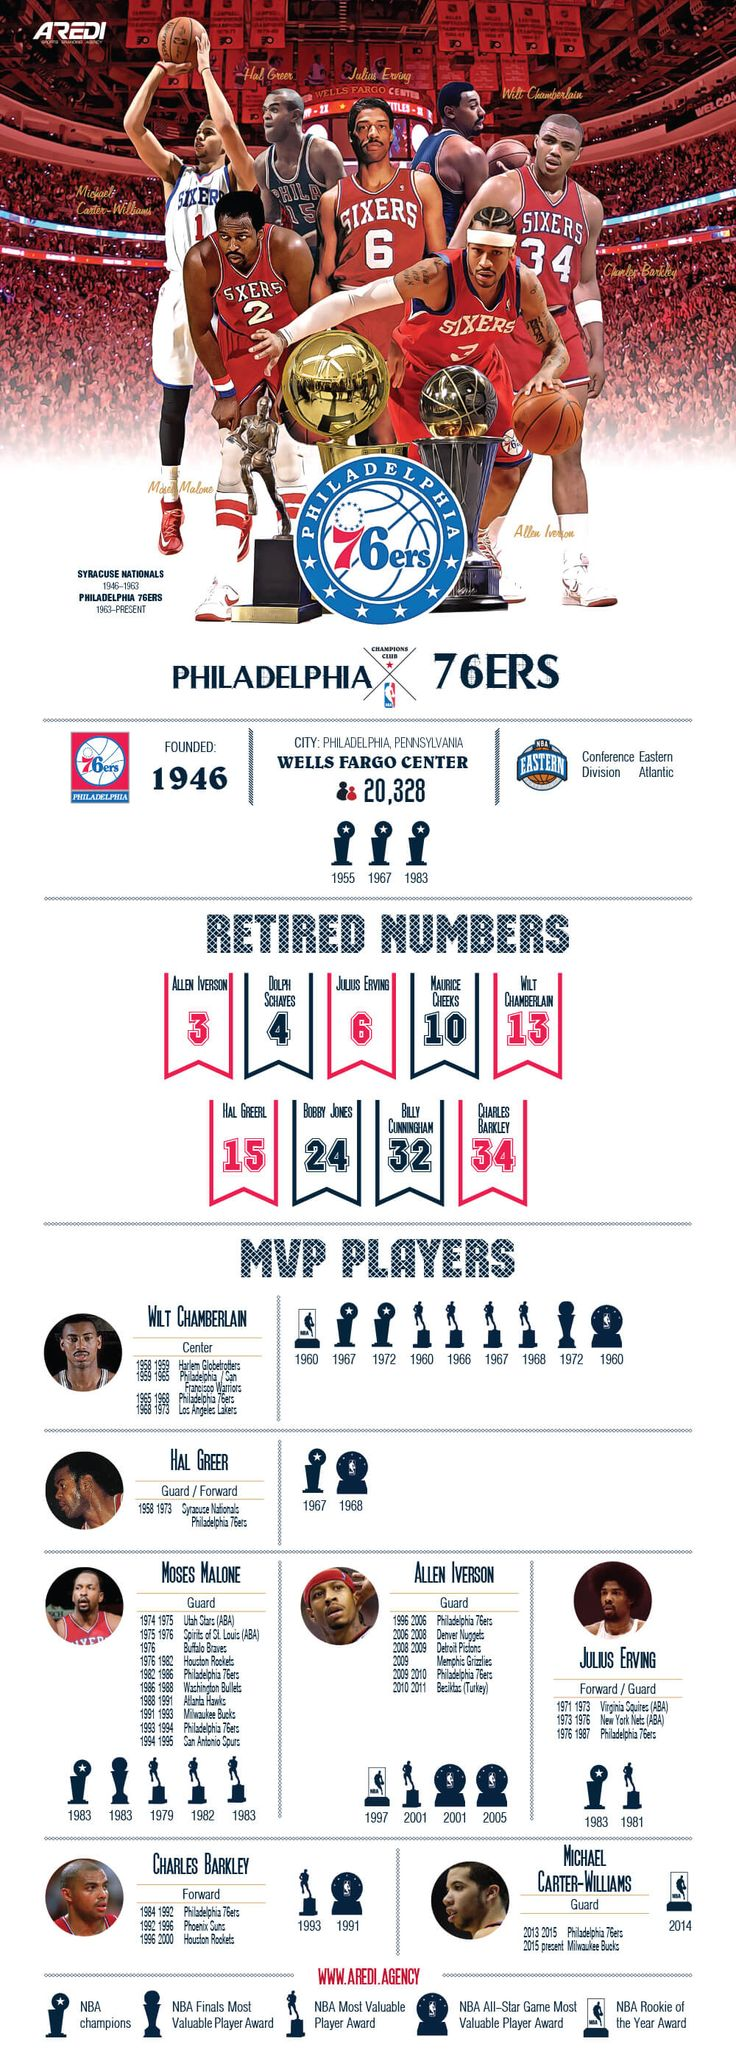 Philadelphia, 76ers, Sixers, infographic, art, sport, create, design, basketball, club, champion, branding, NBA, MVP legends, histoty, All Star game, Wilt Chamberlain, Julius Erving, Charles Barkley, Allen Iverson, Michael Carter-Williams, Moses Malone, Hal Greer, #sportaredi